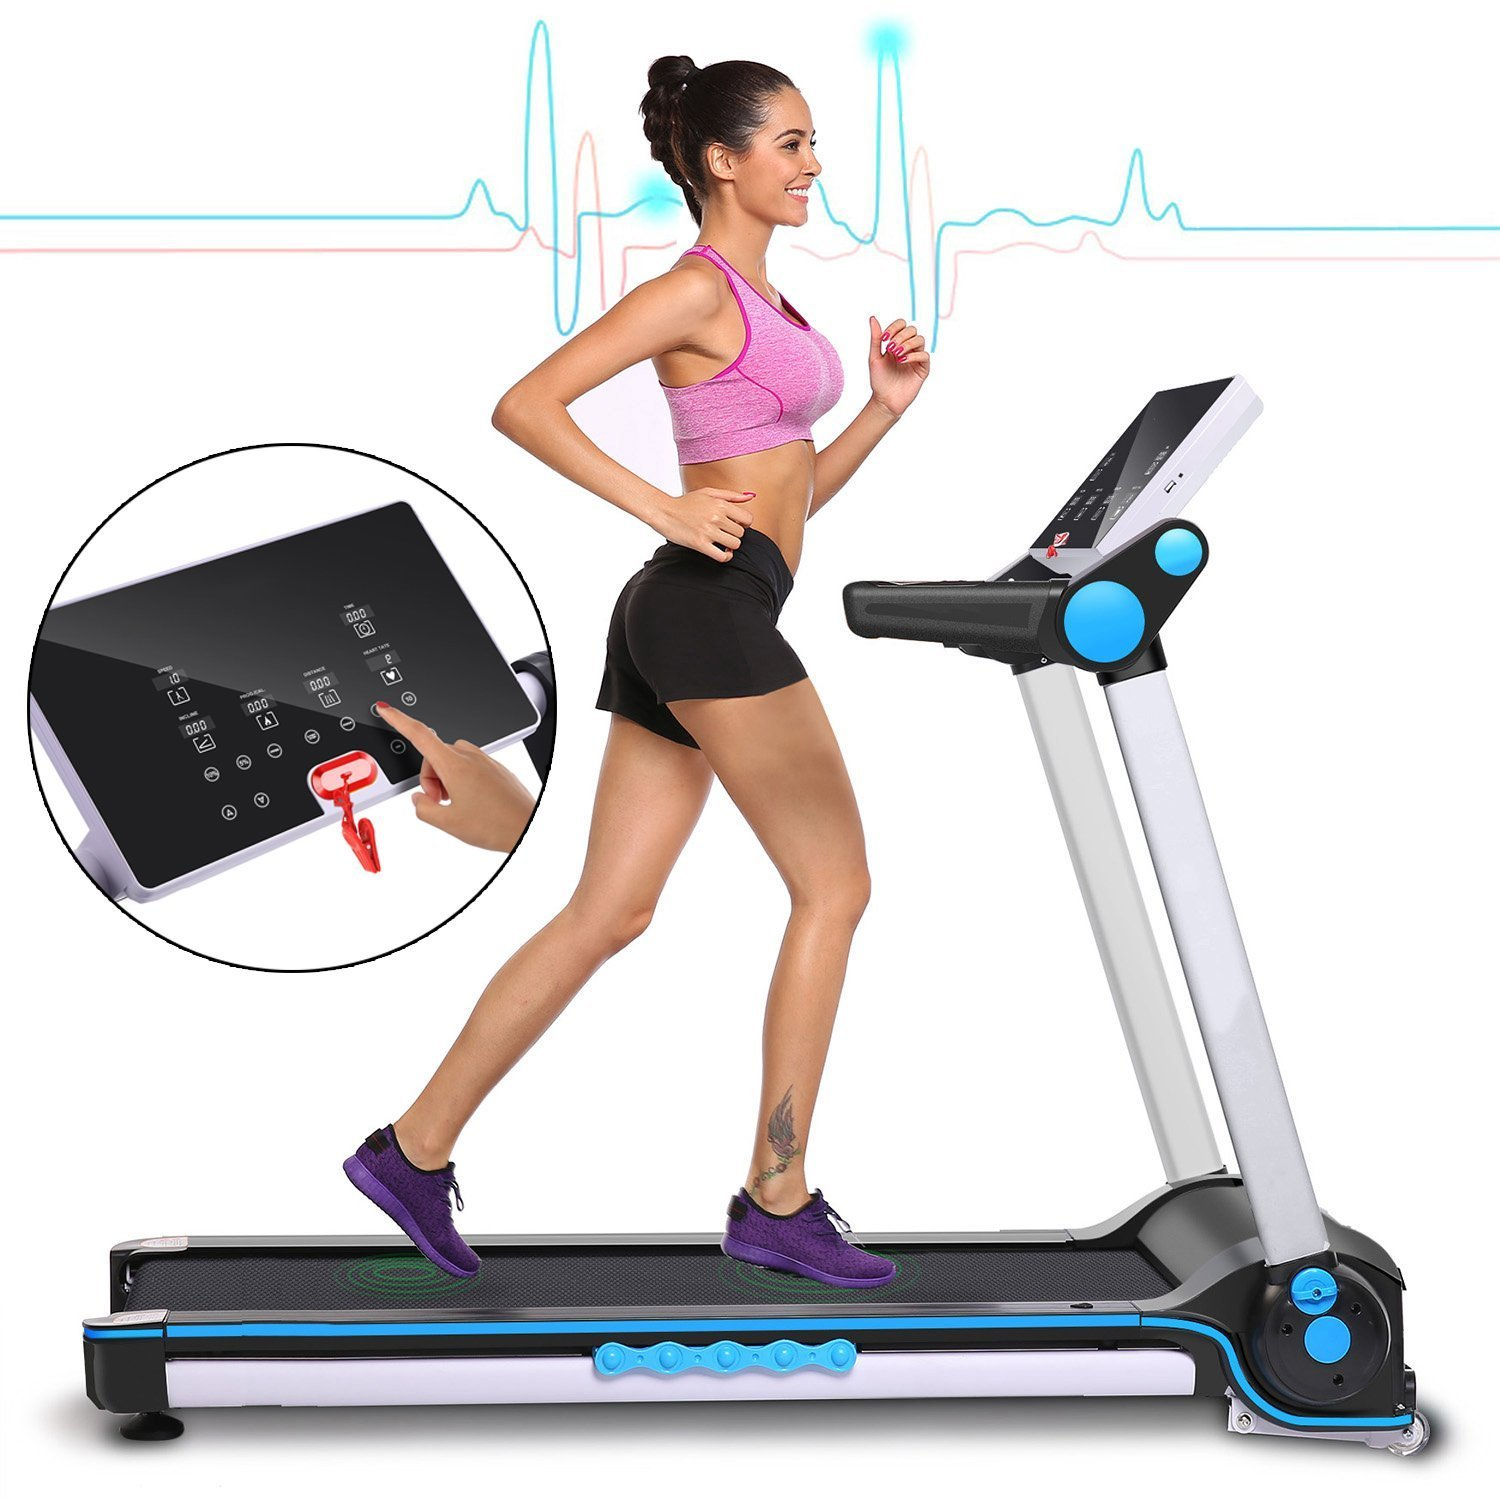 Garain S6400 Folding Electric Treadmill, Bluetooth App Control Touch Screen Exercise Equipment Walking Running Machine Home Fitness Treadmills (US STOCK) by Garain (Image #7)